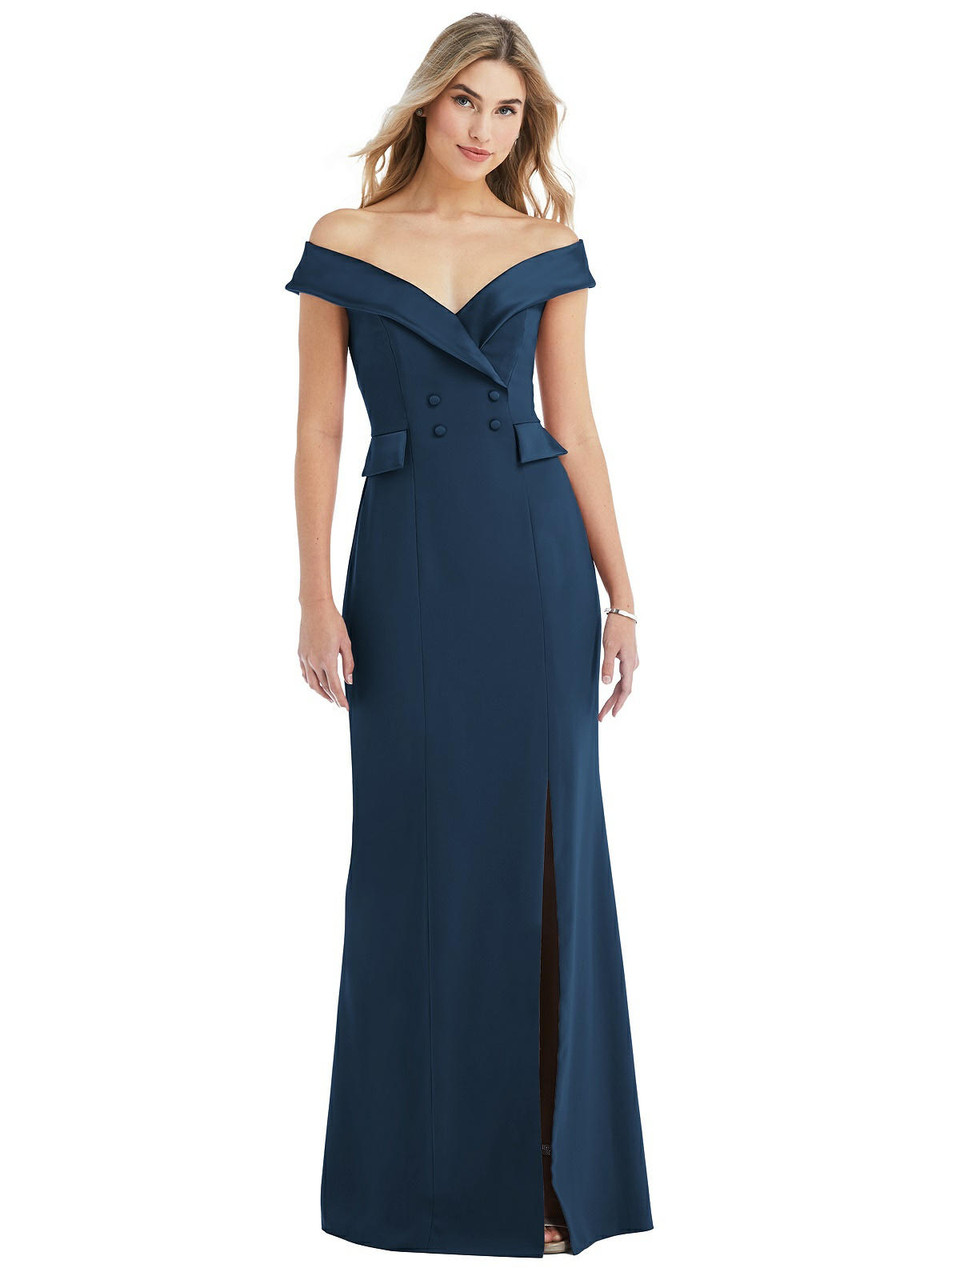 After Six Bridesmaid Dress Style 6843 - Crepe